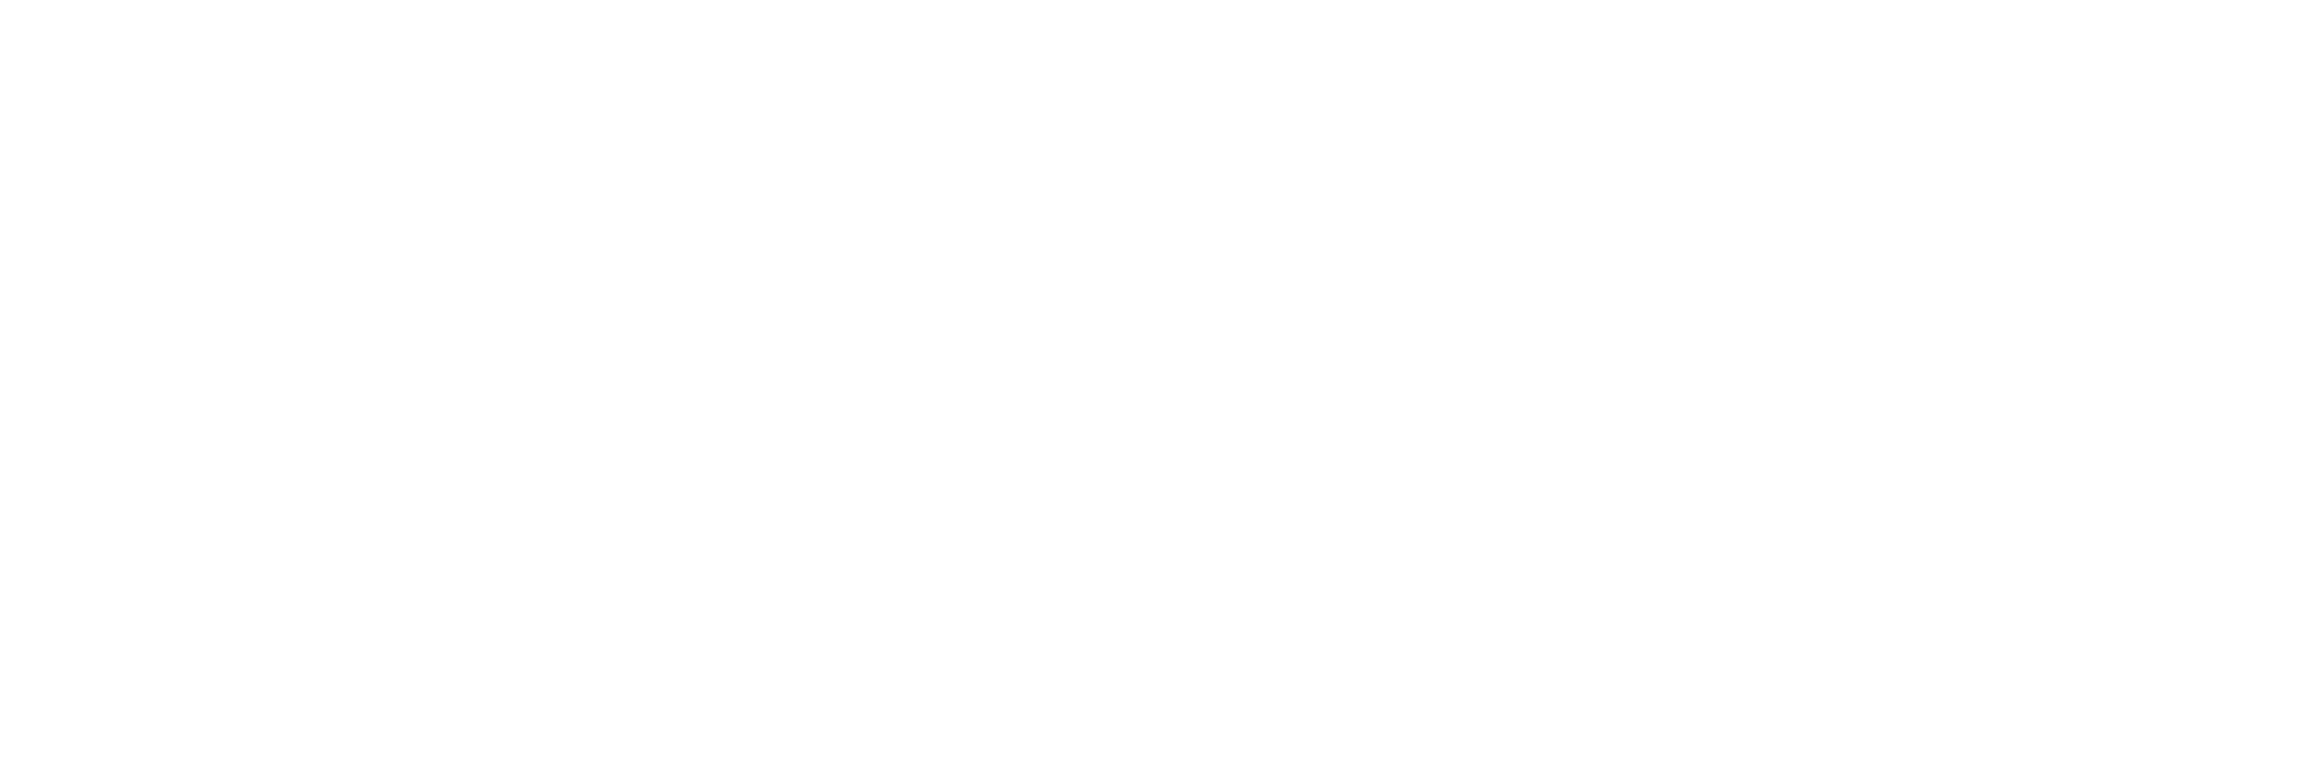 Logo Bike Registrada